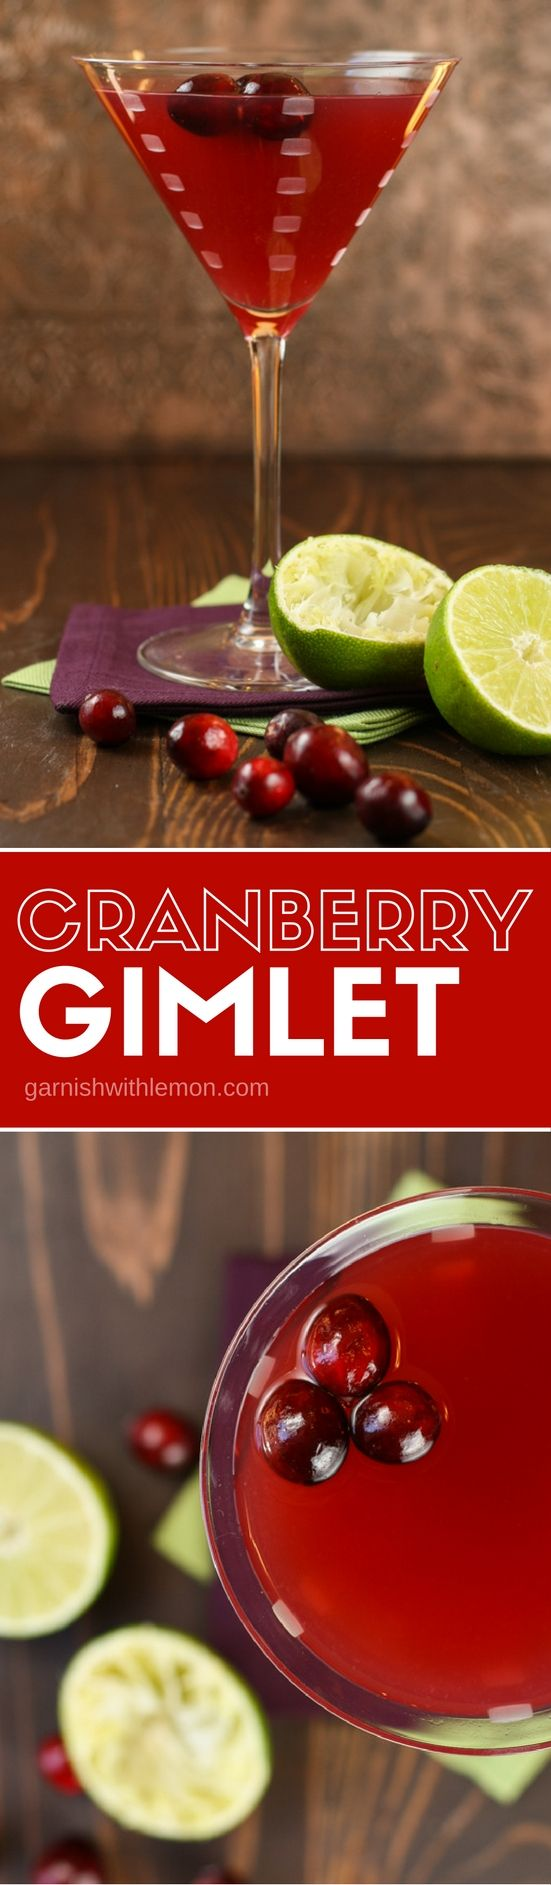 Fall happy hour never looked prettier! This simple Cranberry Gimlet cocktail recipe is the perfect drink to enjoy now and well into the entertaining season.